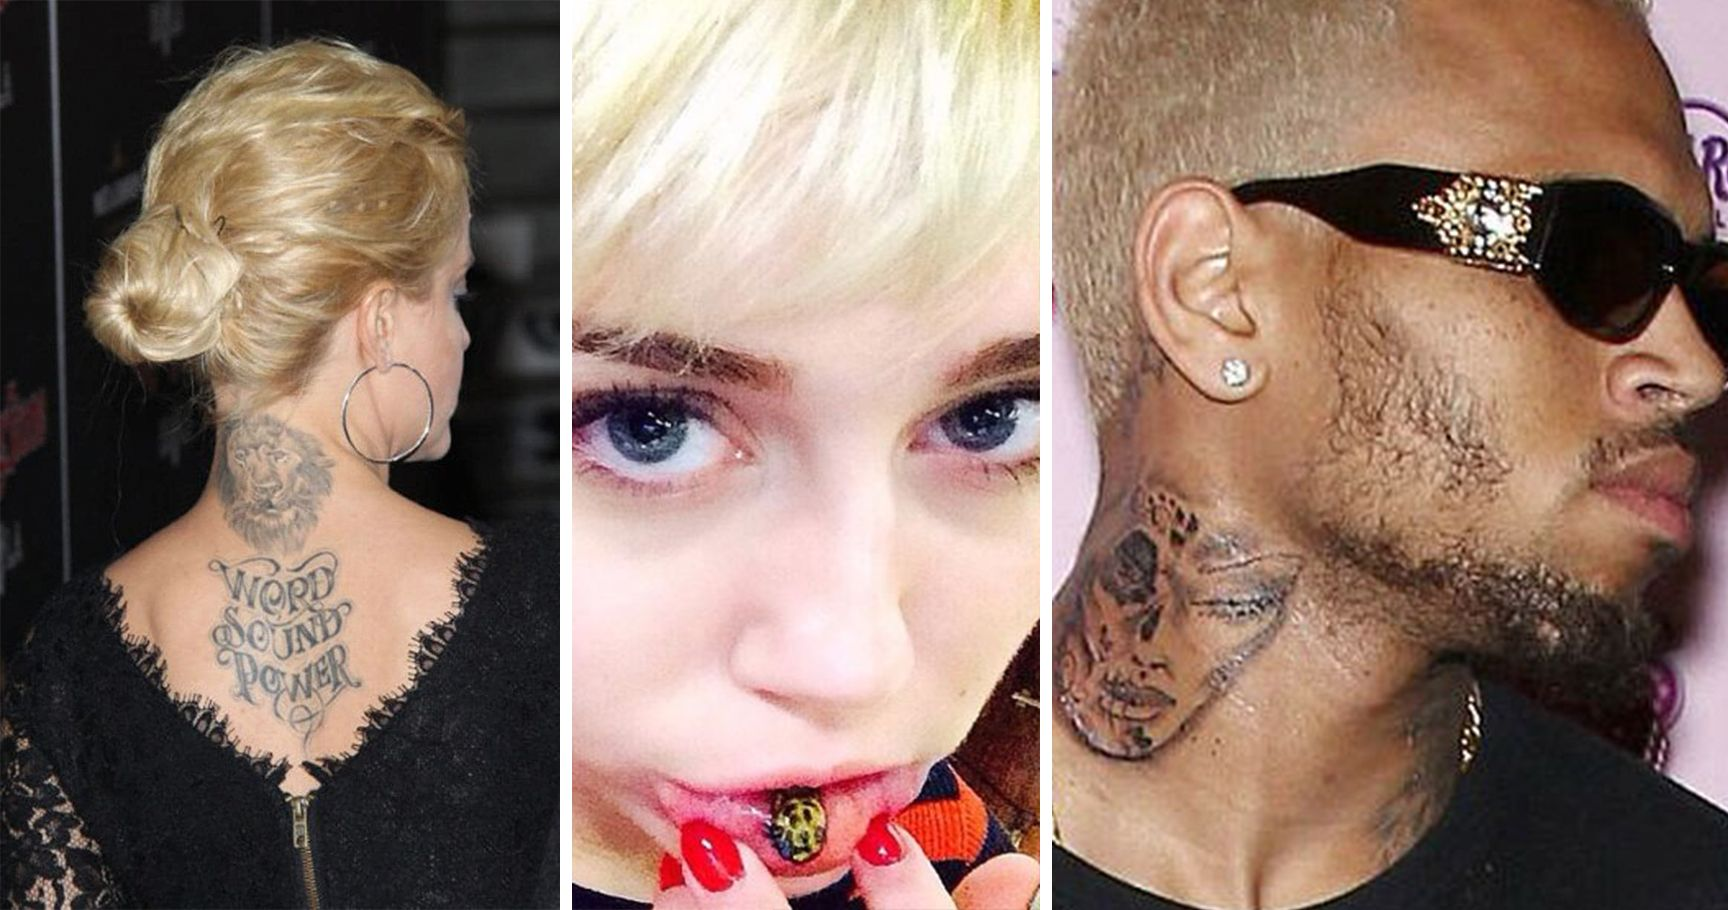 9a9c448a4069d 15 Celebrity Tattoos That Are Absolutely Horrendous | TheThings